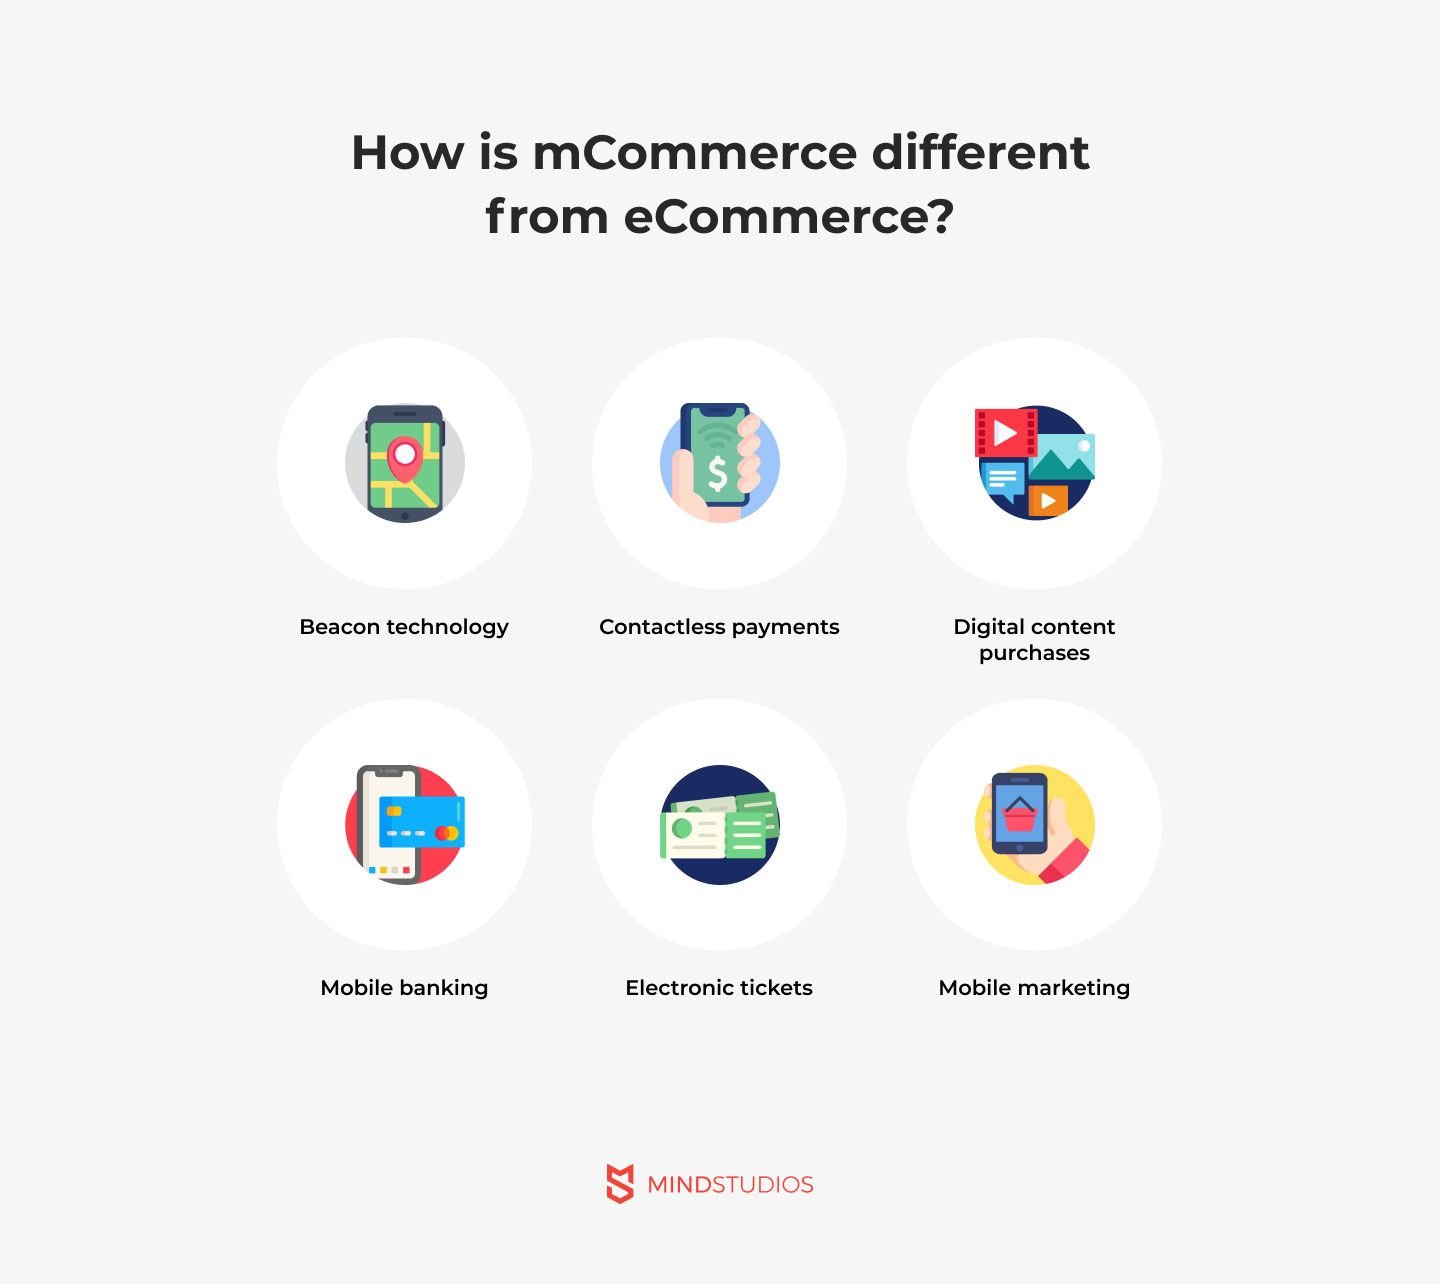 How is mCommerce different from eCommerce?